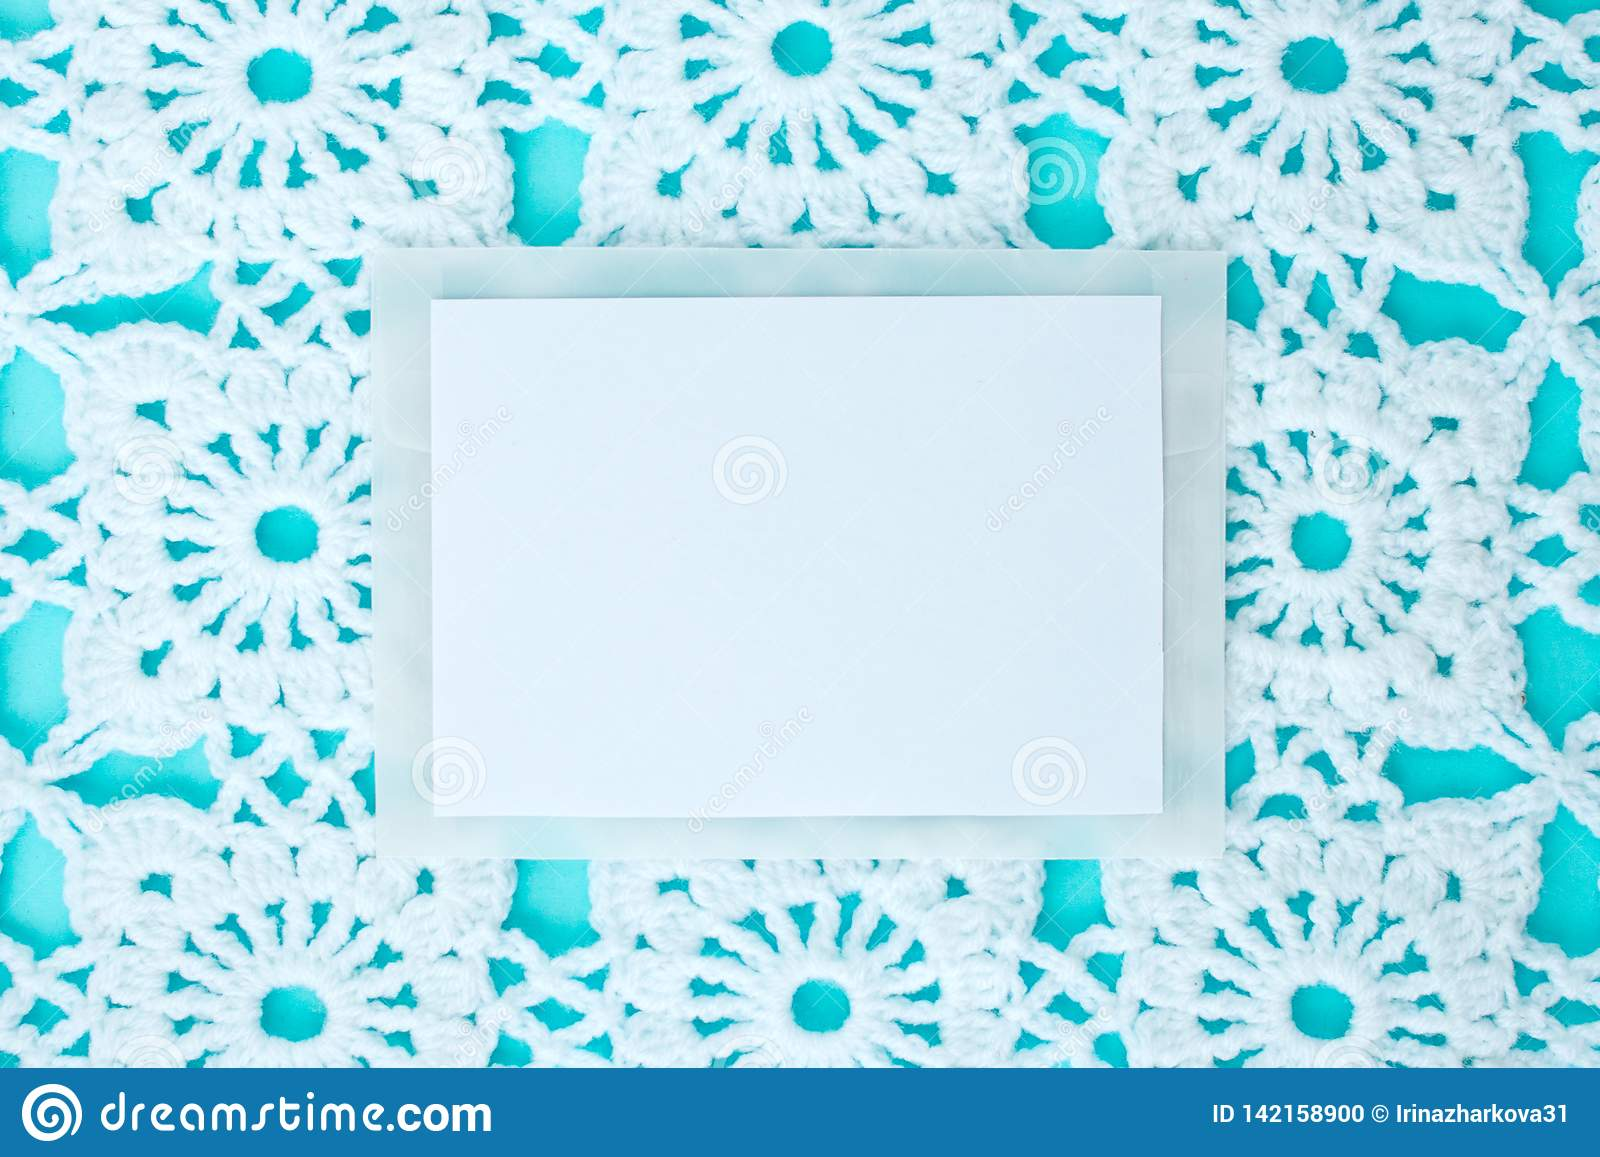 Flat, lay, a sheet of paper for text on a blue background with crocheted white vintage lace, winter theme, square ornament